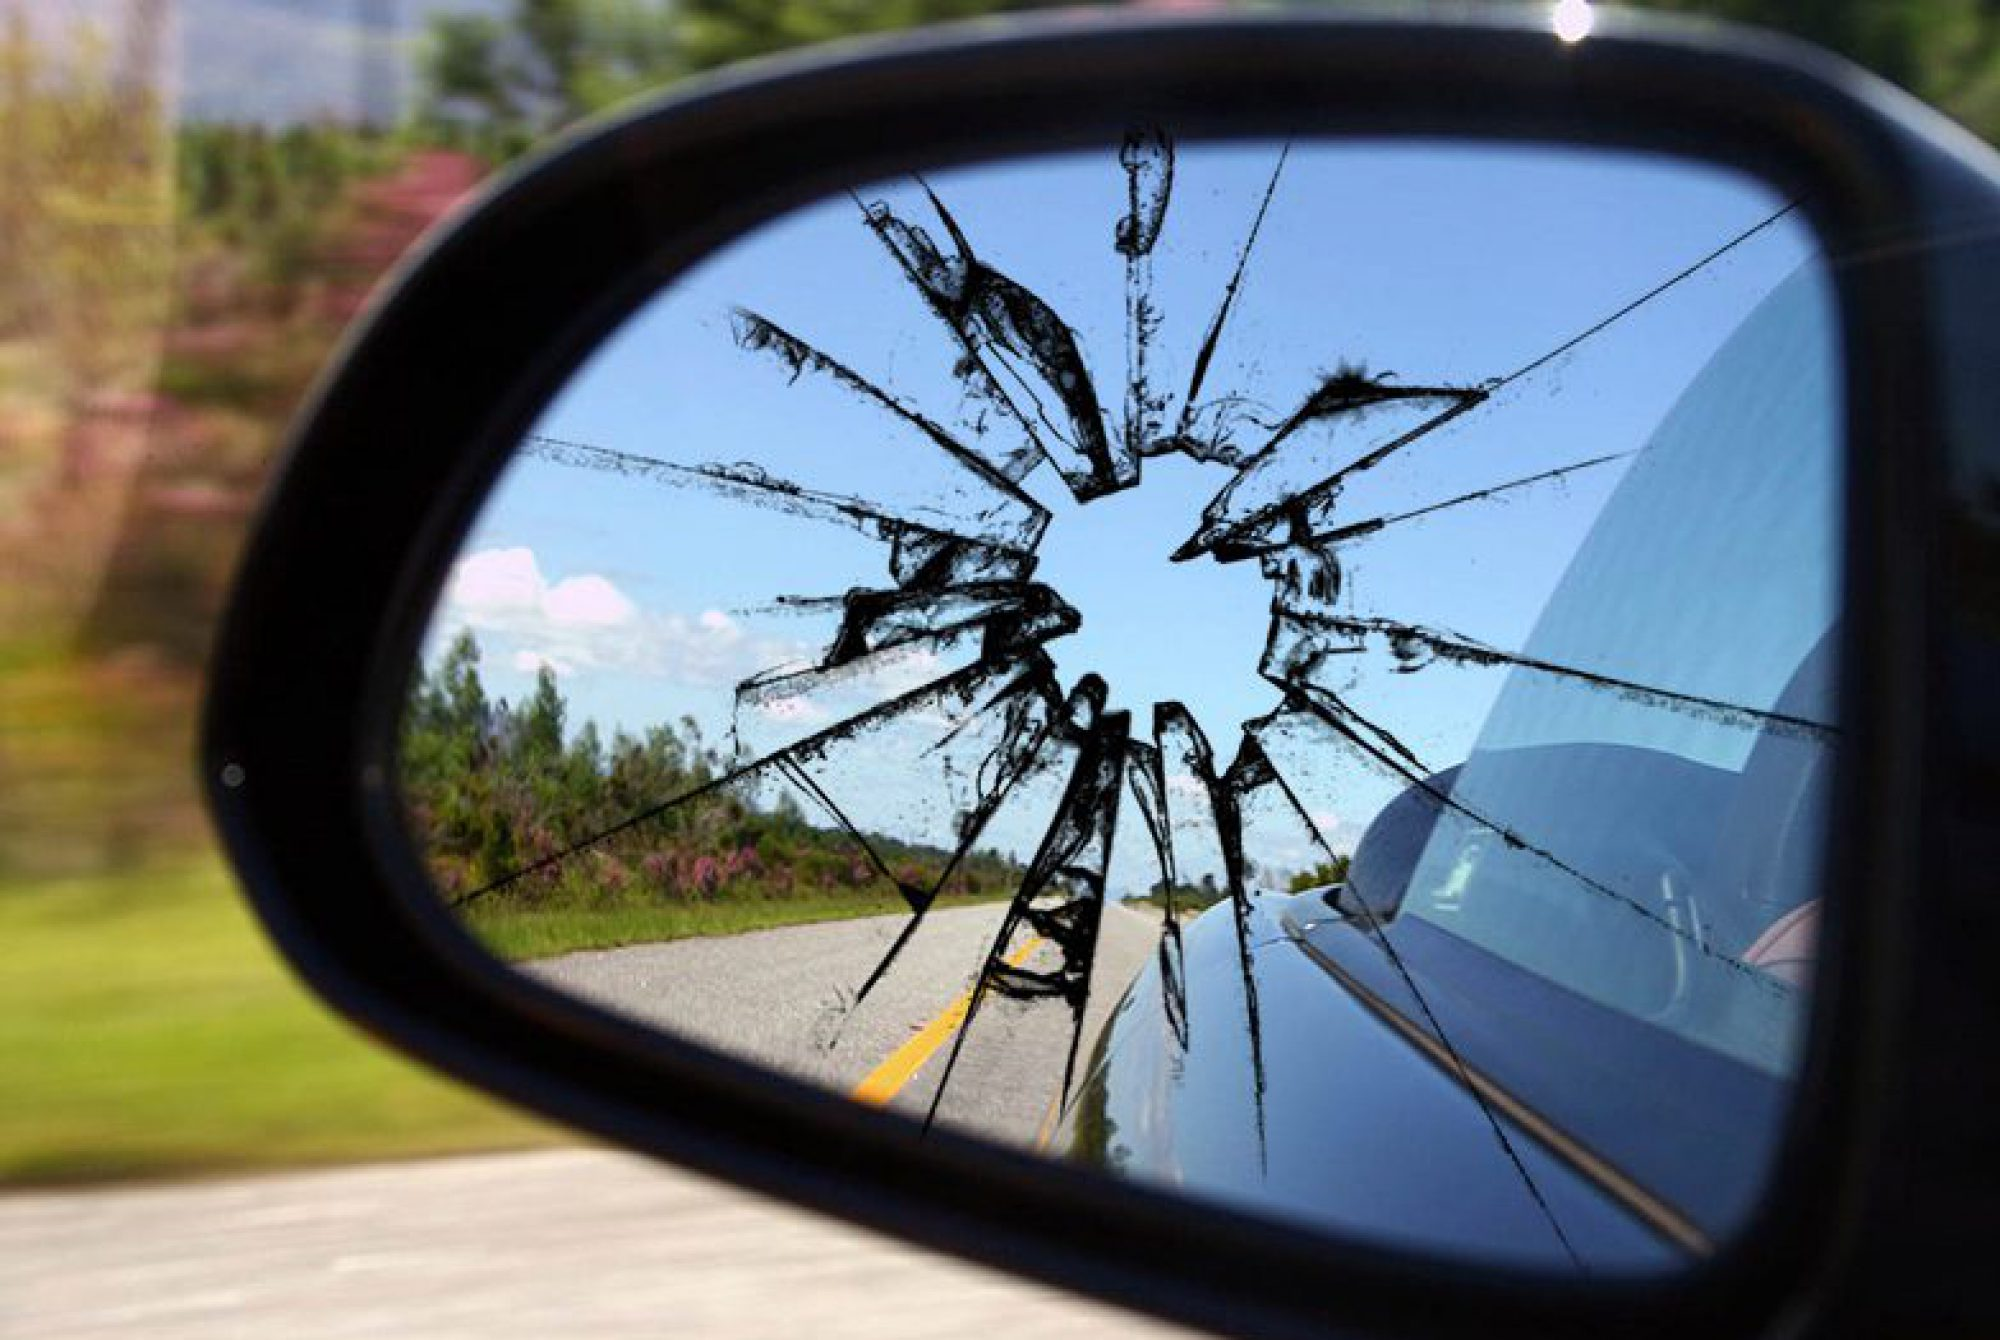 cracked rear viewer